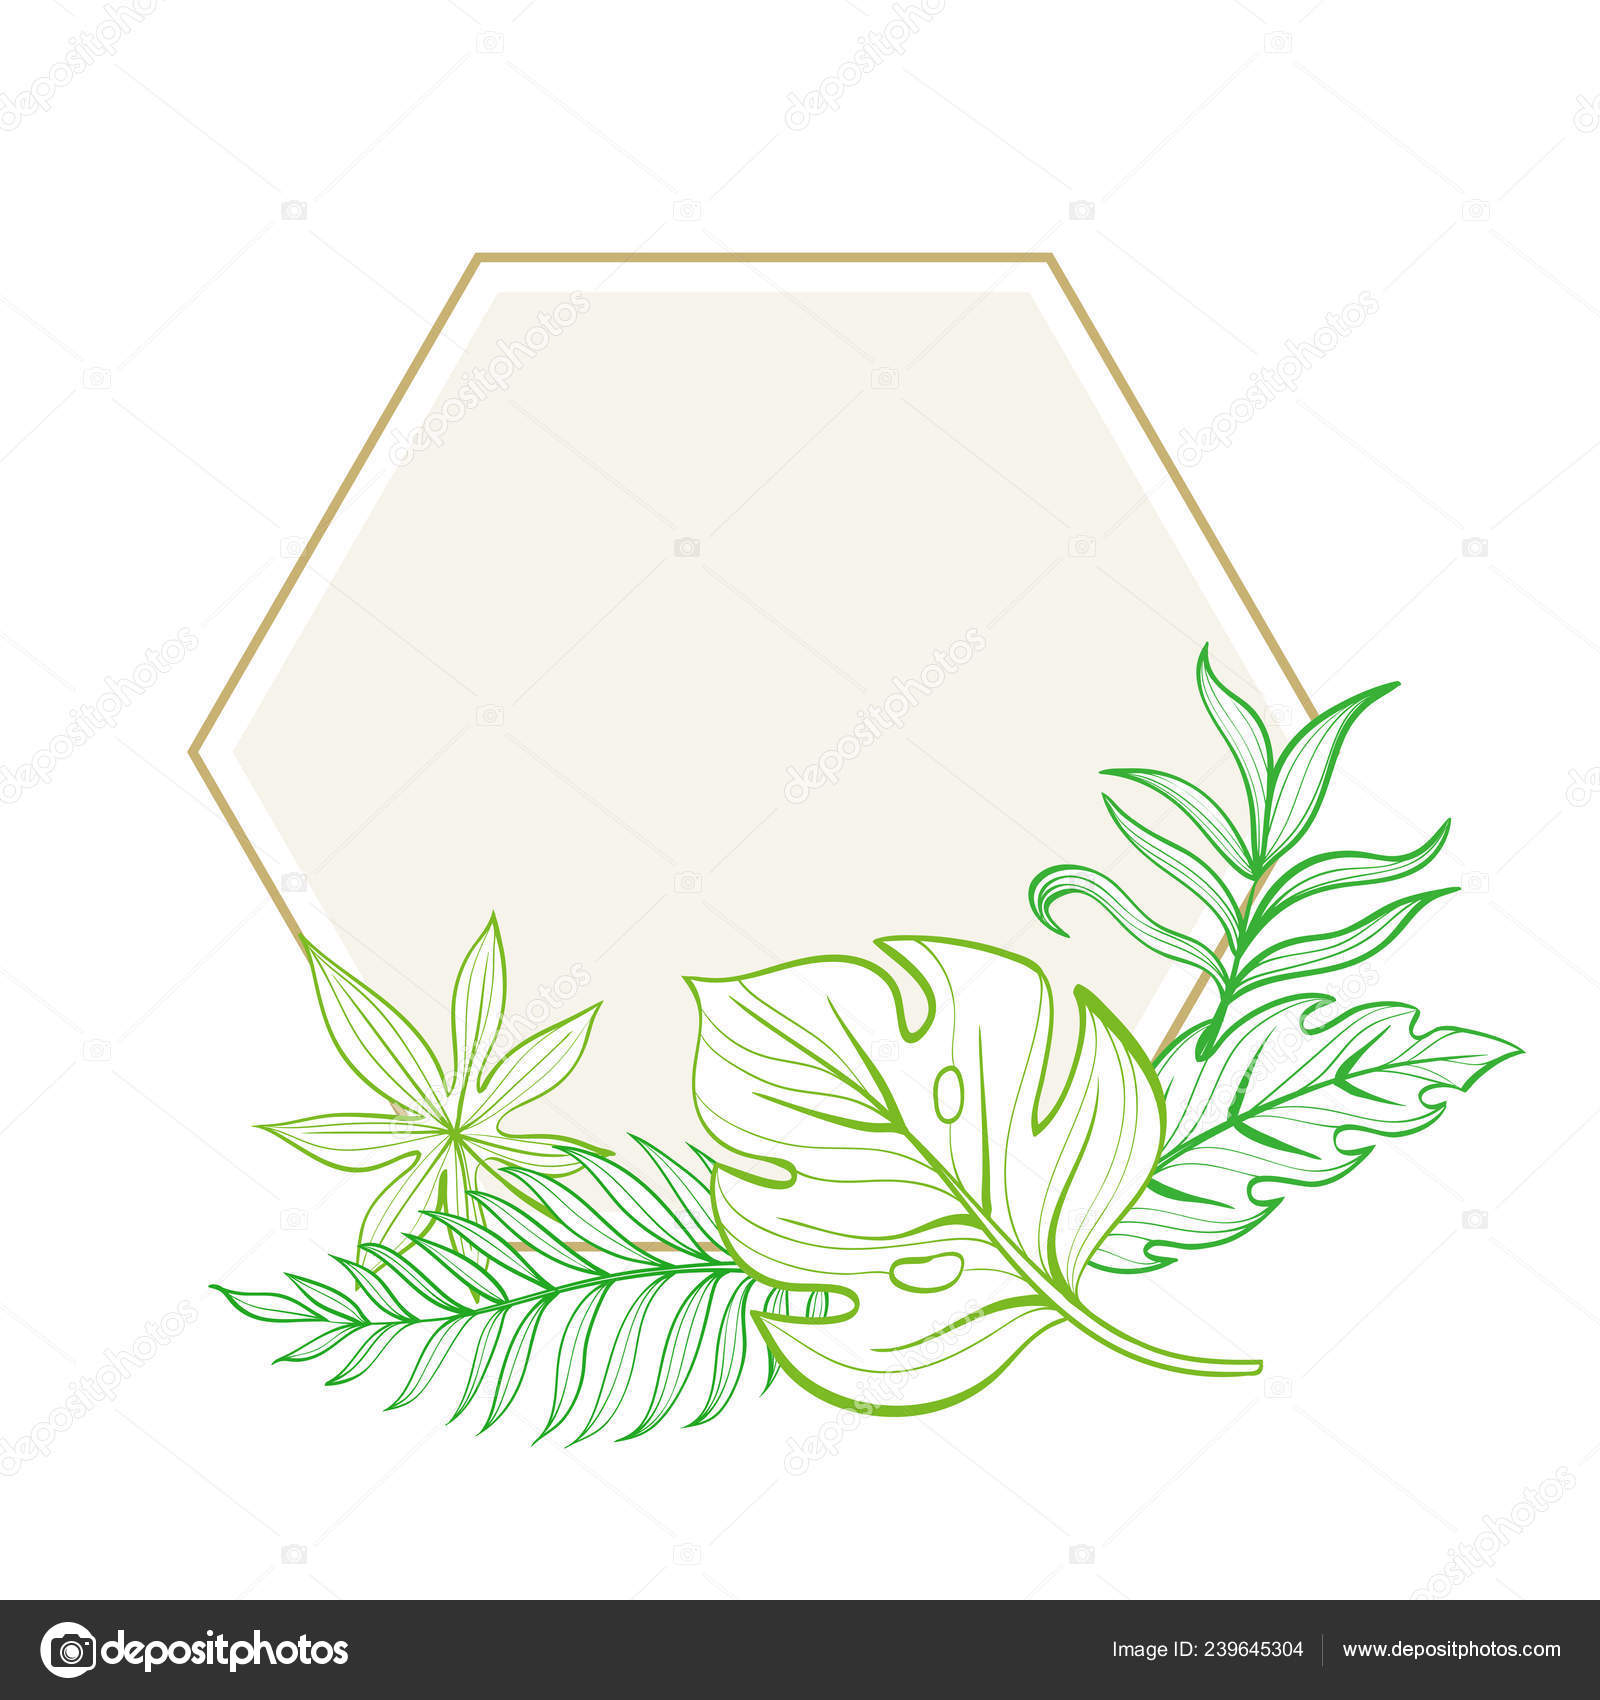 Frame With Tropical Leaves Postcard Hand Drawn Illustration Line Drawing Stock Vector C Elena Al 239645304 Download transparent tropical leaves png for free on pngkey.com. frame with tropical leaves postcard hand drawn illustration line drawing stock vector c elena al 239645304